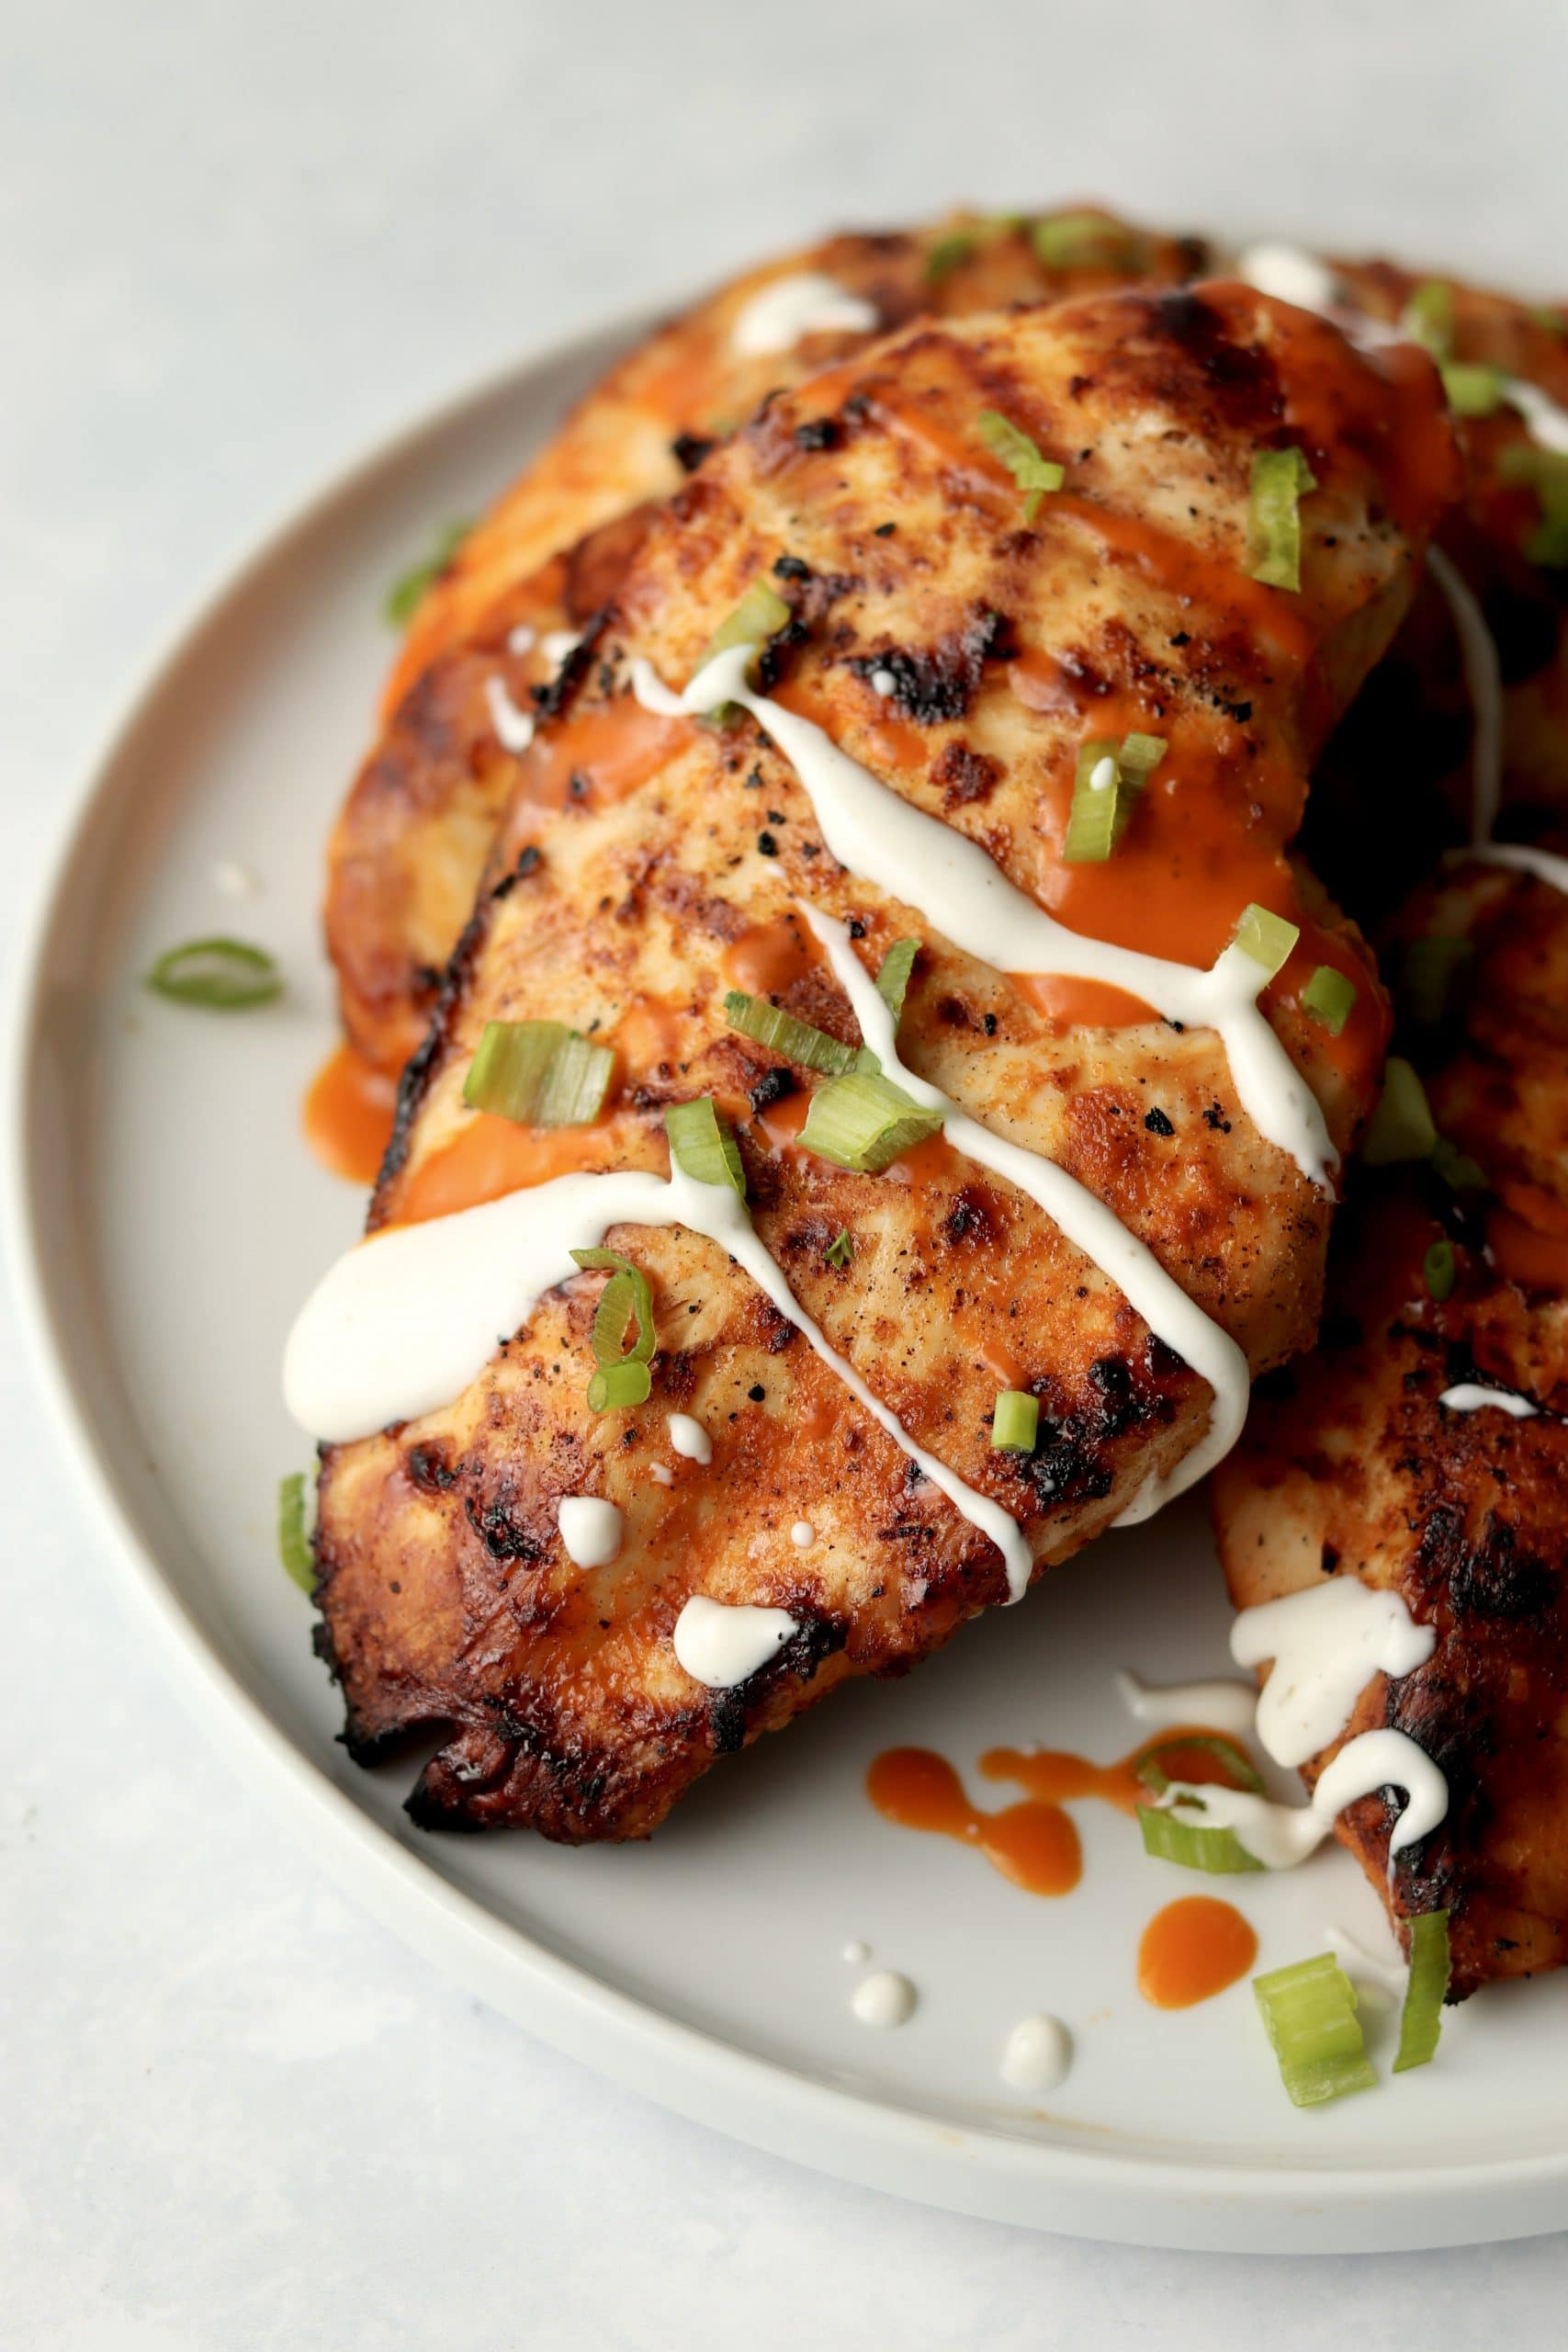 grilled buffalo chicken breasts drizzled with ranch dressing